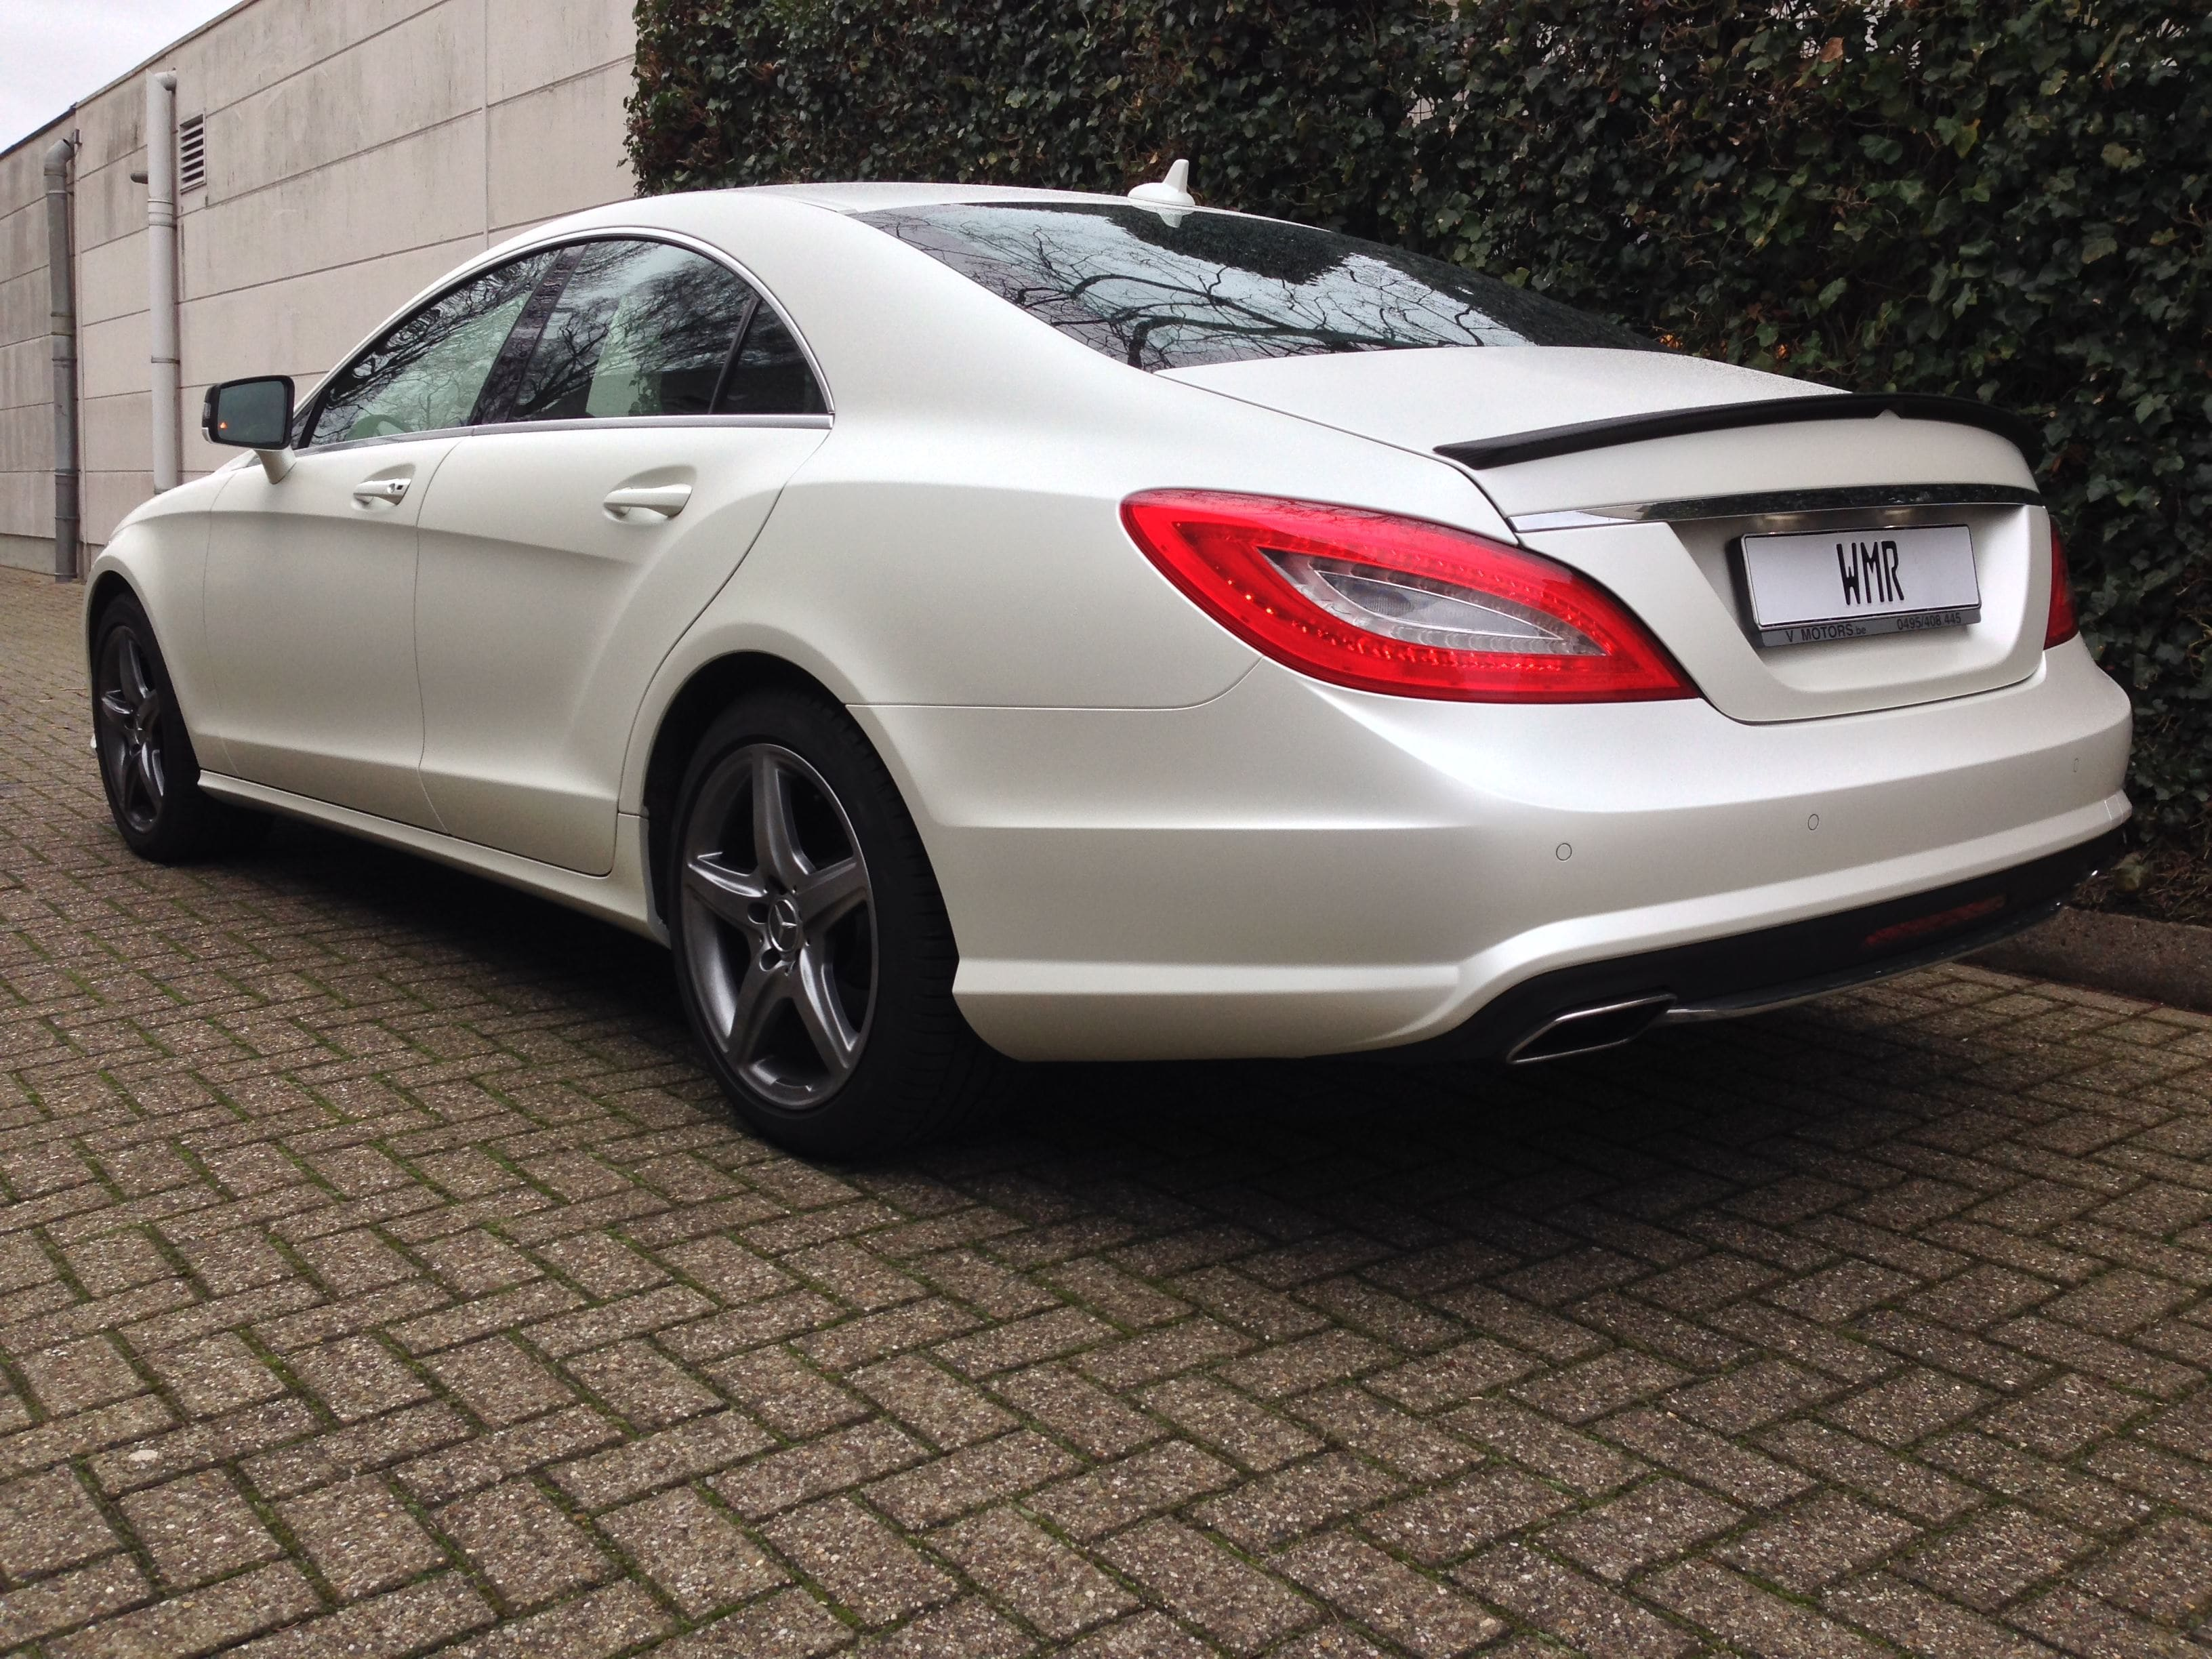 Mercedes CLS met White Satin Pearl Wrap, Carwrapping door Wrapmyride.nu Foto-nr:6216, ©2020